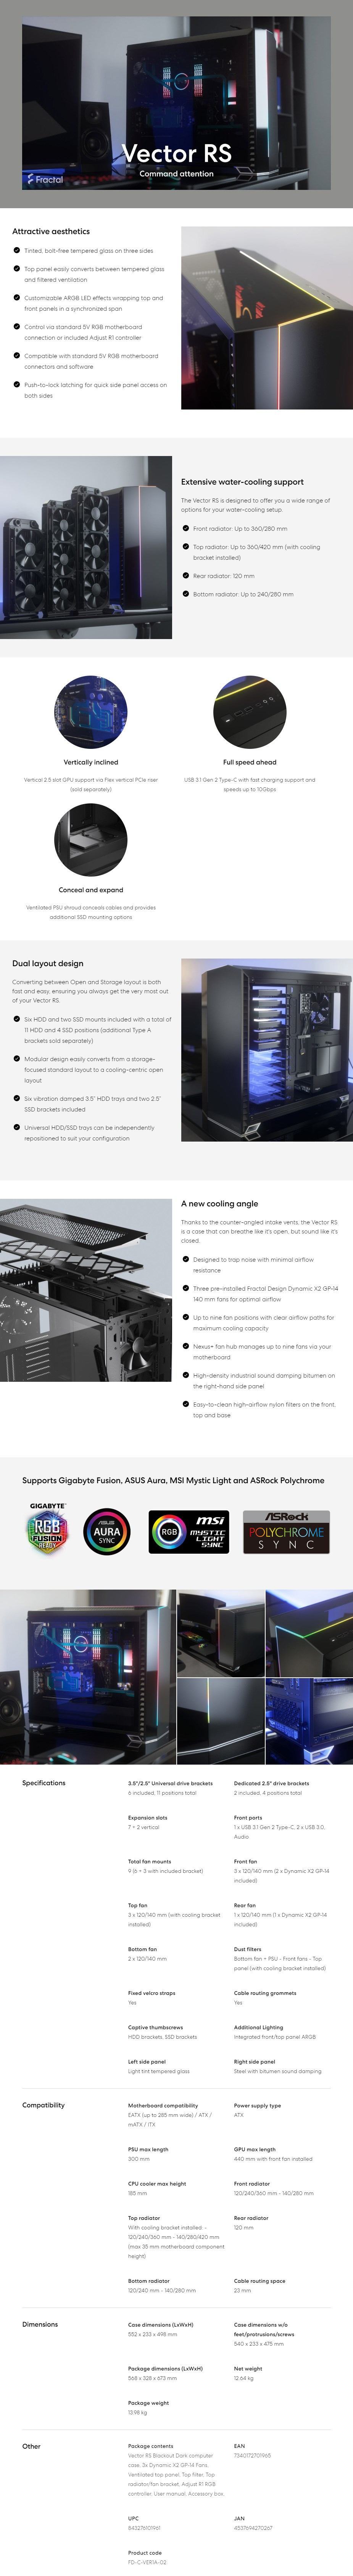 Fractal Design Vector RS Blackout Dark Tempered Glass RGB Mid-Tower E-ATX Case - Desktop Overview 1